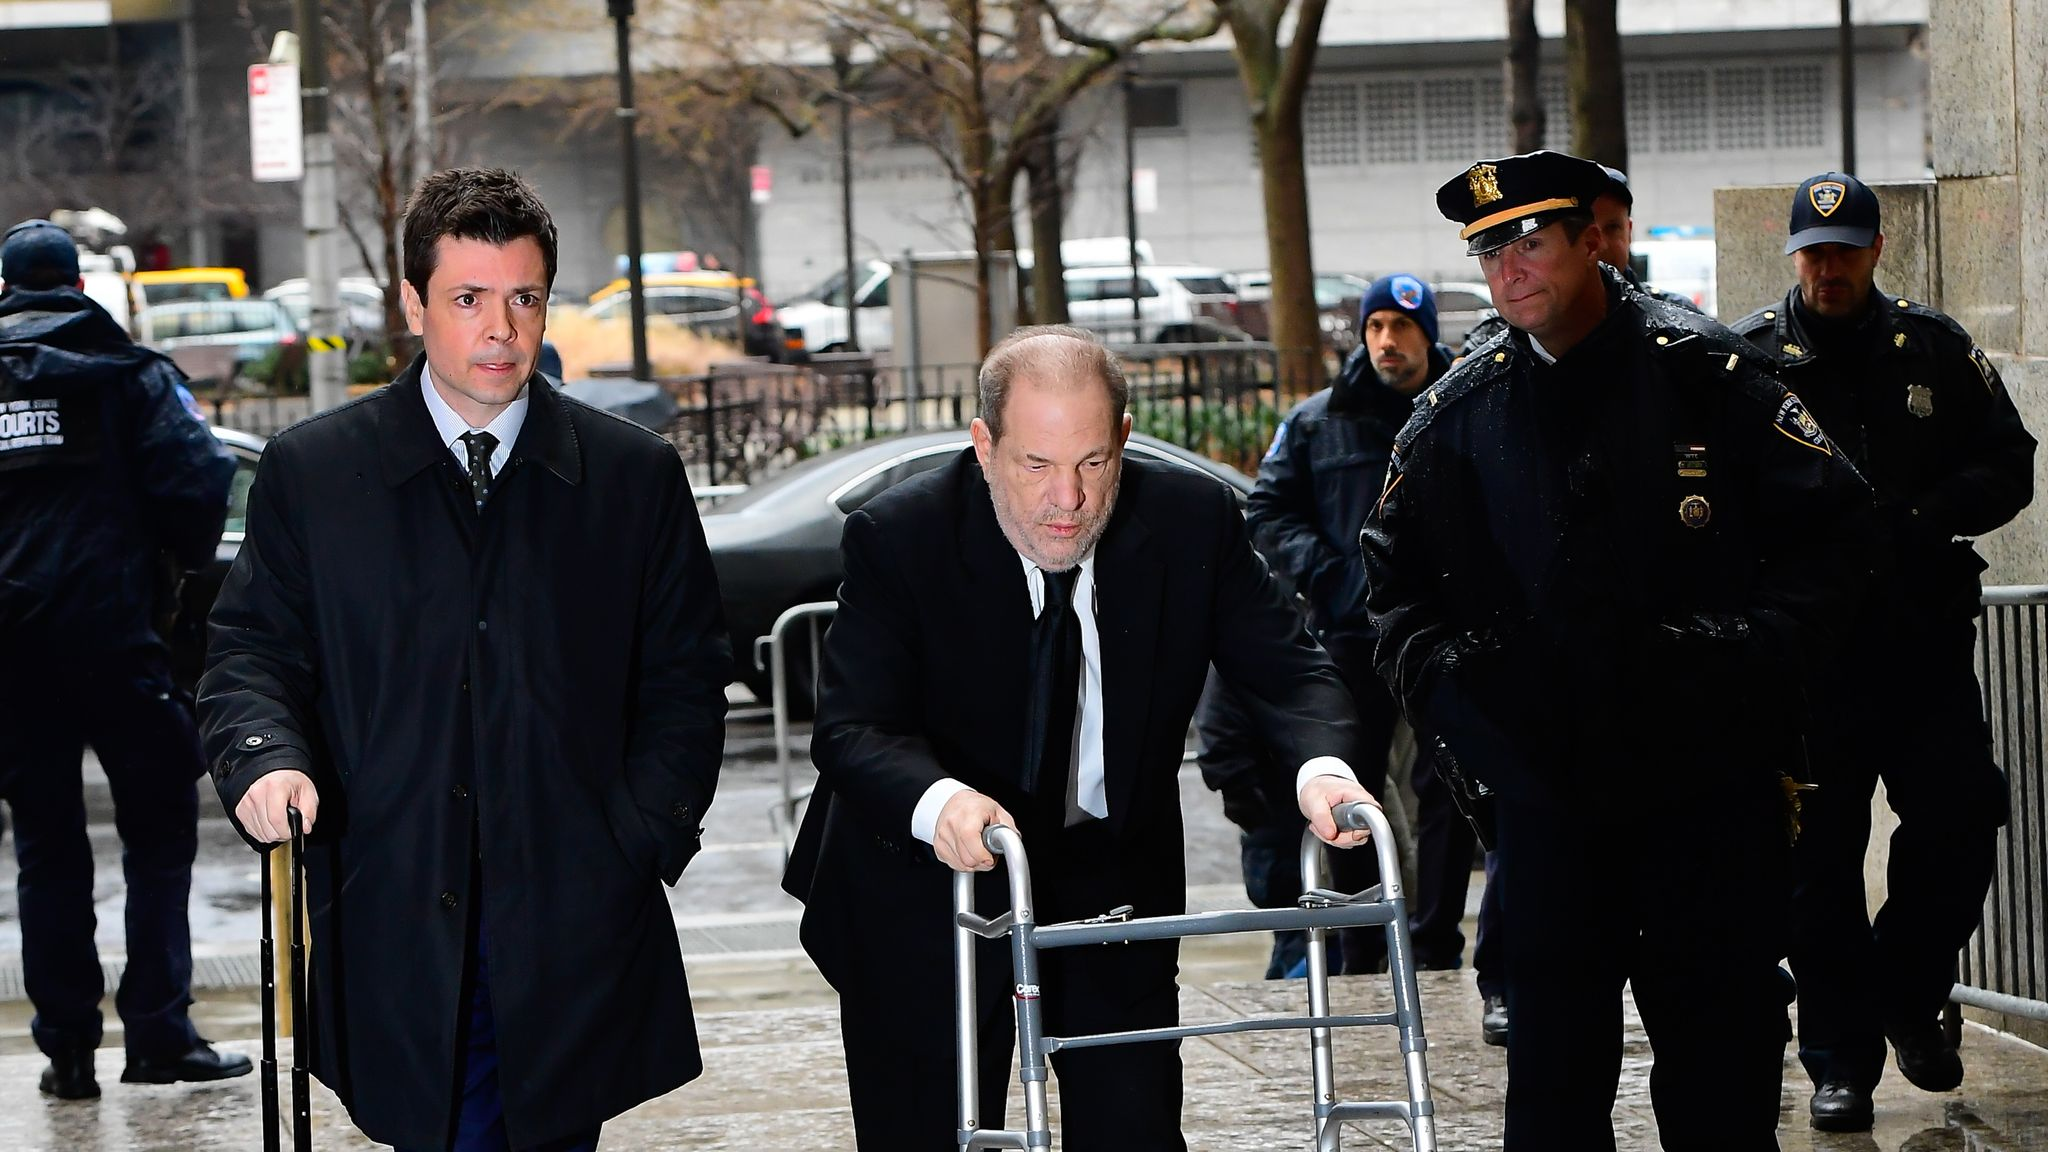 NEW YORK, NY - JANUARY 16: Harvey Weinstein arrived at Manhattan Criminal Court on January 16, 2020 in New York City. (Photo by Raymond Hall/GC Images)